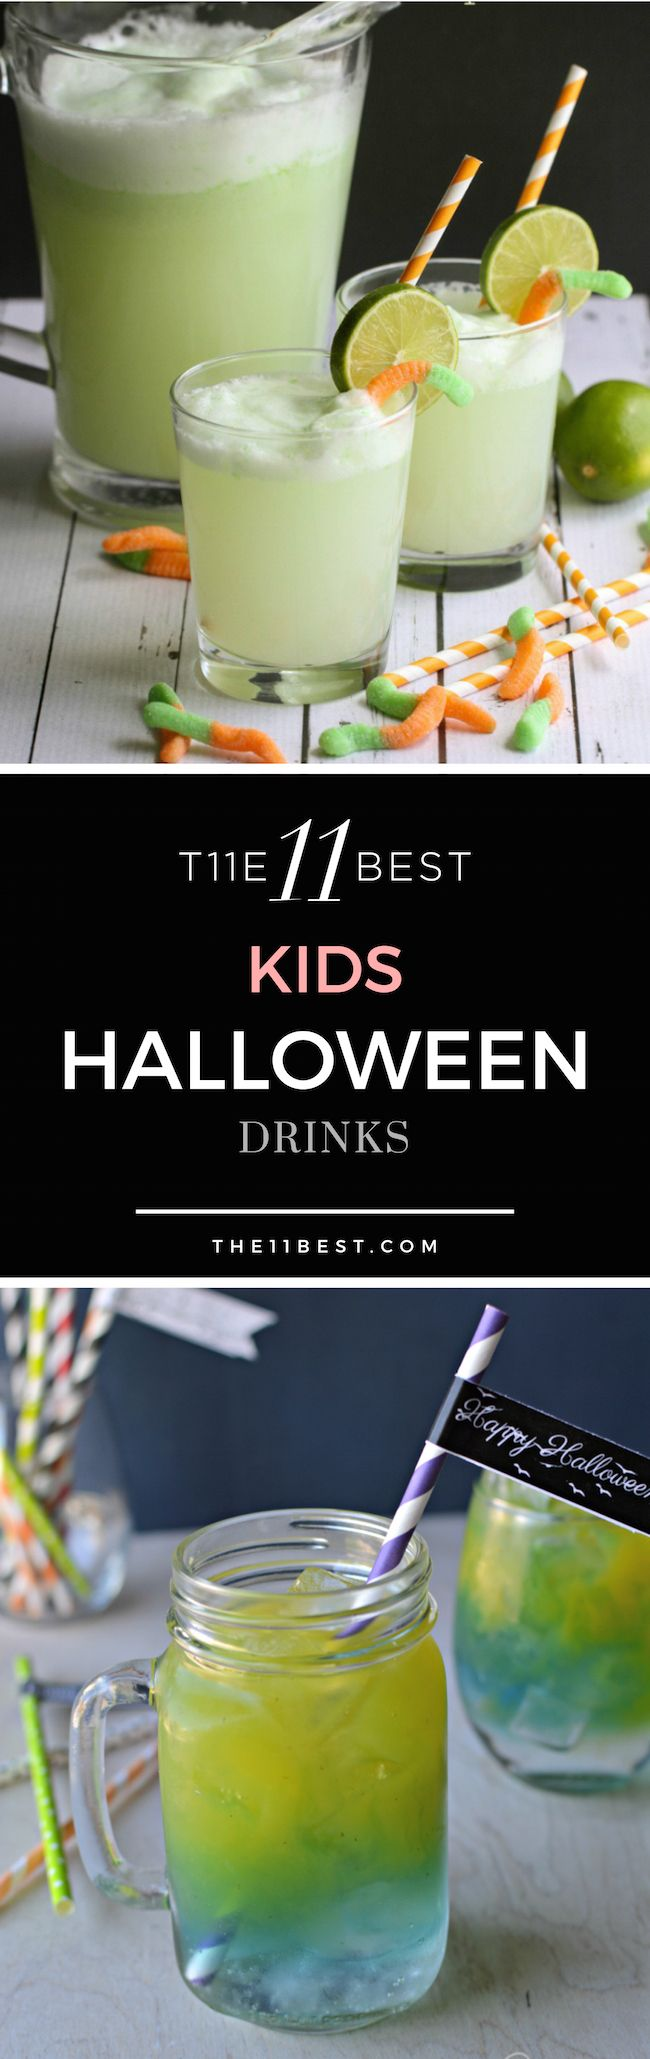 The 11 Best Halloween Drink Recipes for Kids